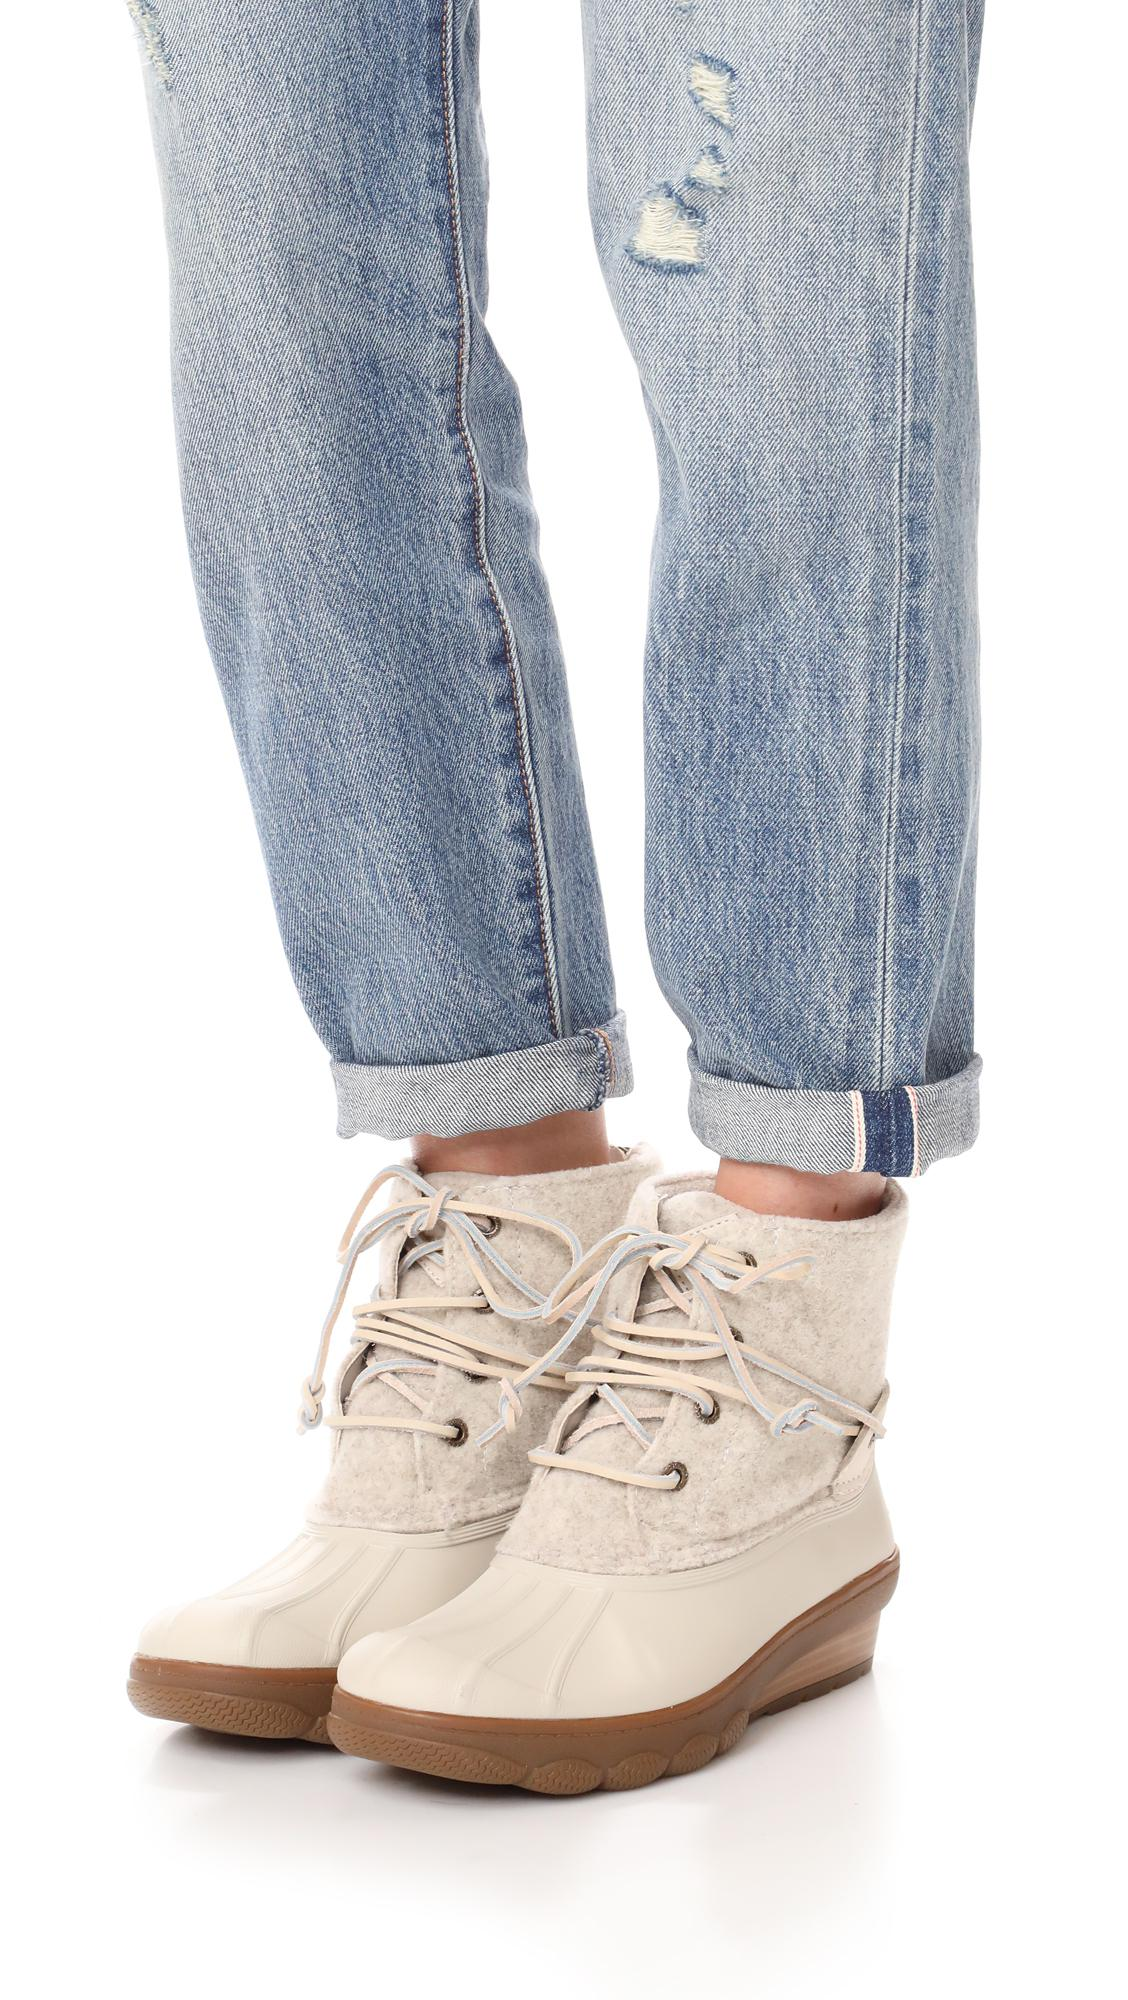 d81796554bfd Lyst - Sperry Top-Sider Saltwater Wedge Tide Wool Booties in White